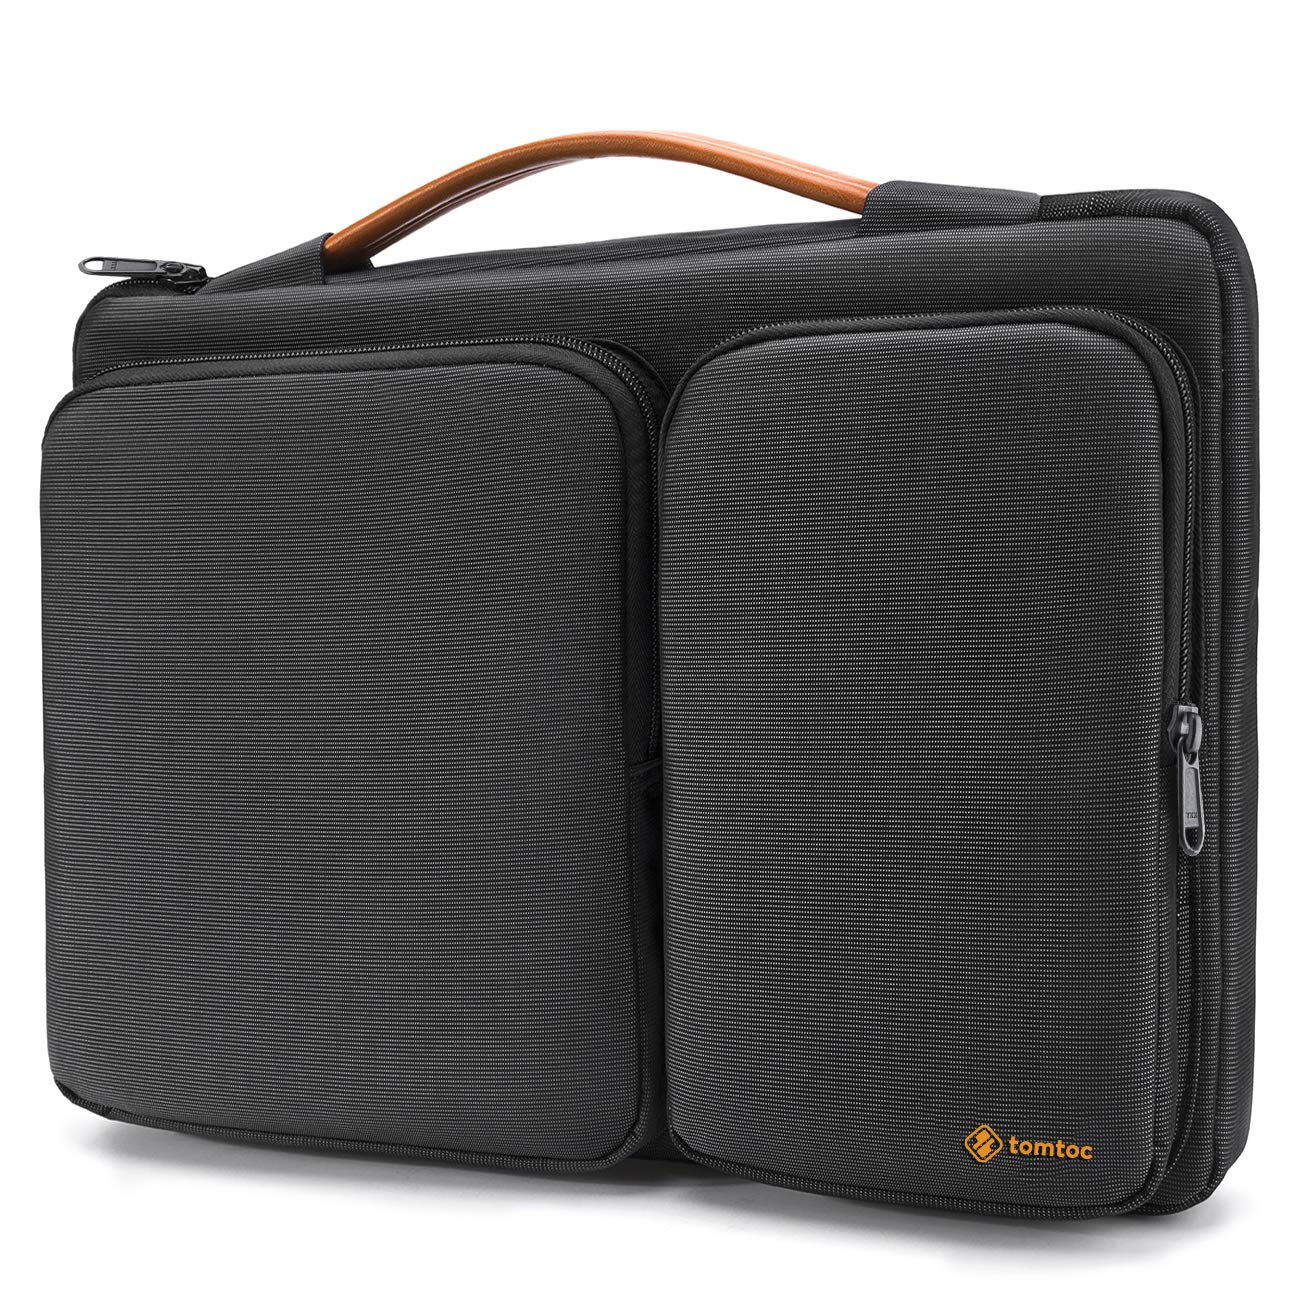 tomtoc 360 Protective Laptop Sleeve for 12.3 Surface Pro X/7/6/5/4, 13-inch New MacBook Air Retina A2179 A1932, MacBook Pro w/USB-C A2251 A2289 A2159 A1989, 12.9 iPad Pro 3/4 Gen, Water-Resistant Bag